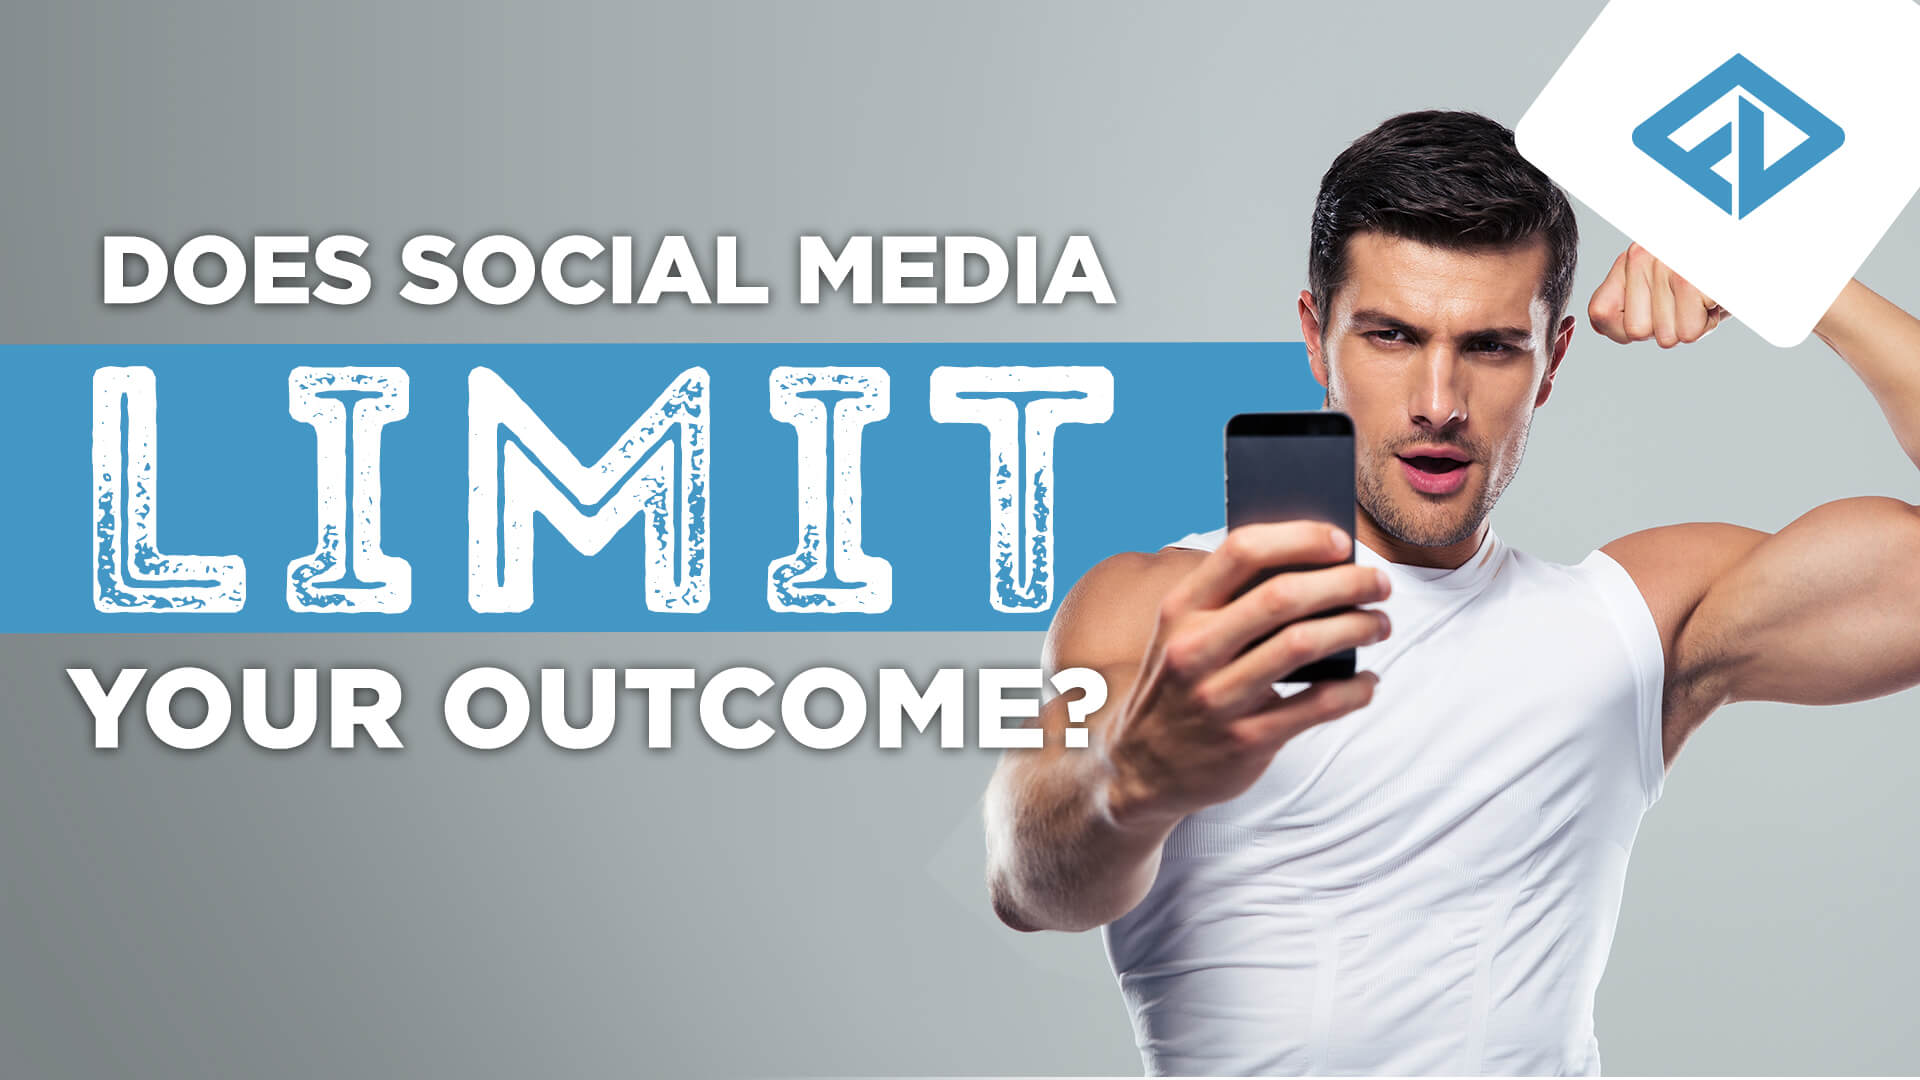 Does Social Media Limit Your Outcomes?